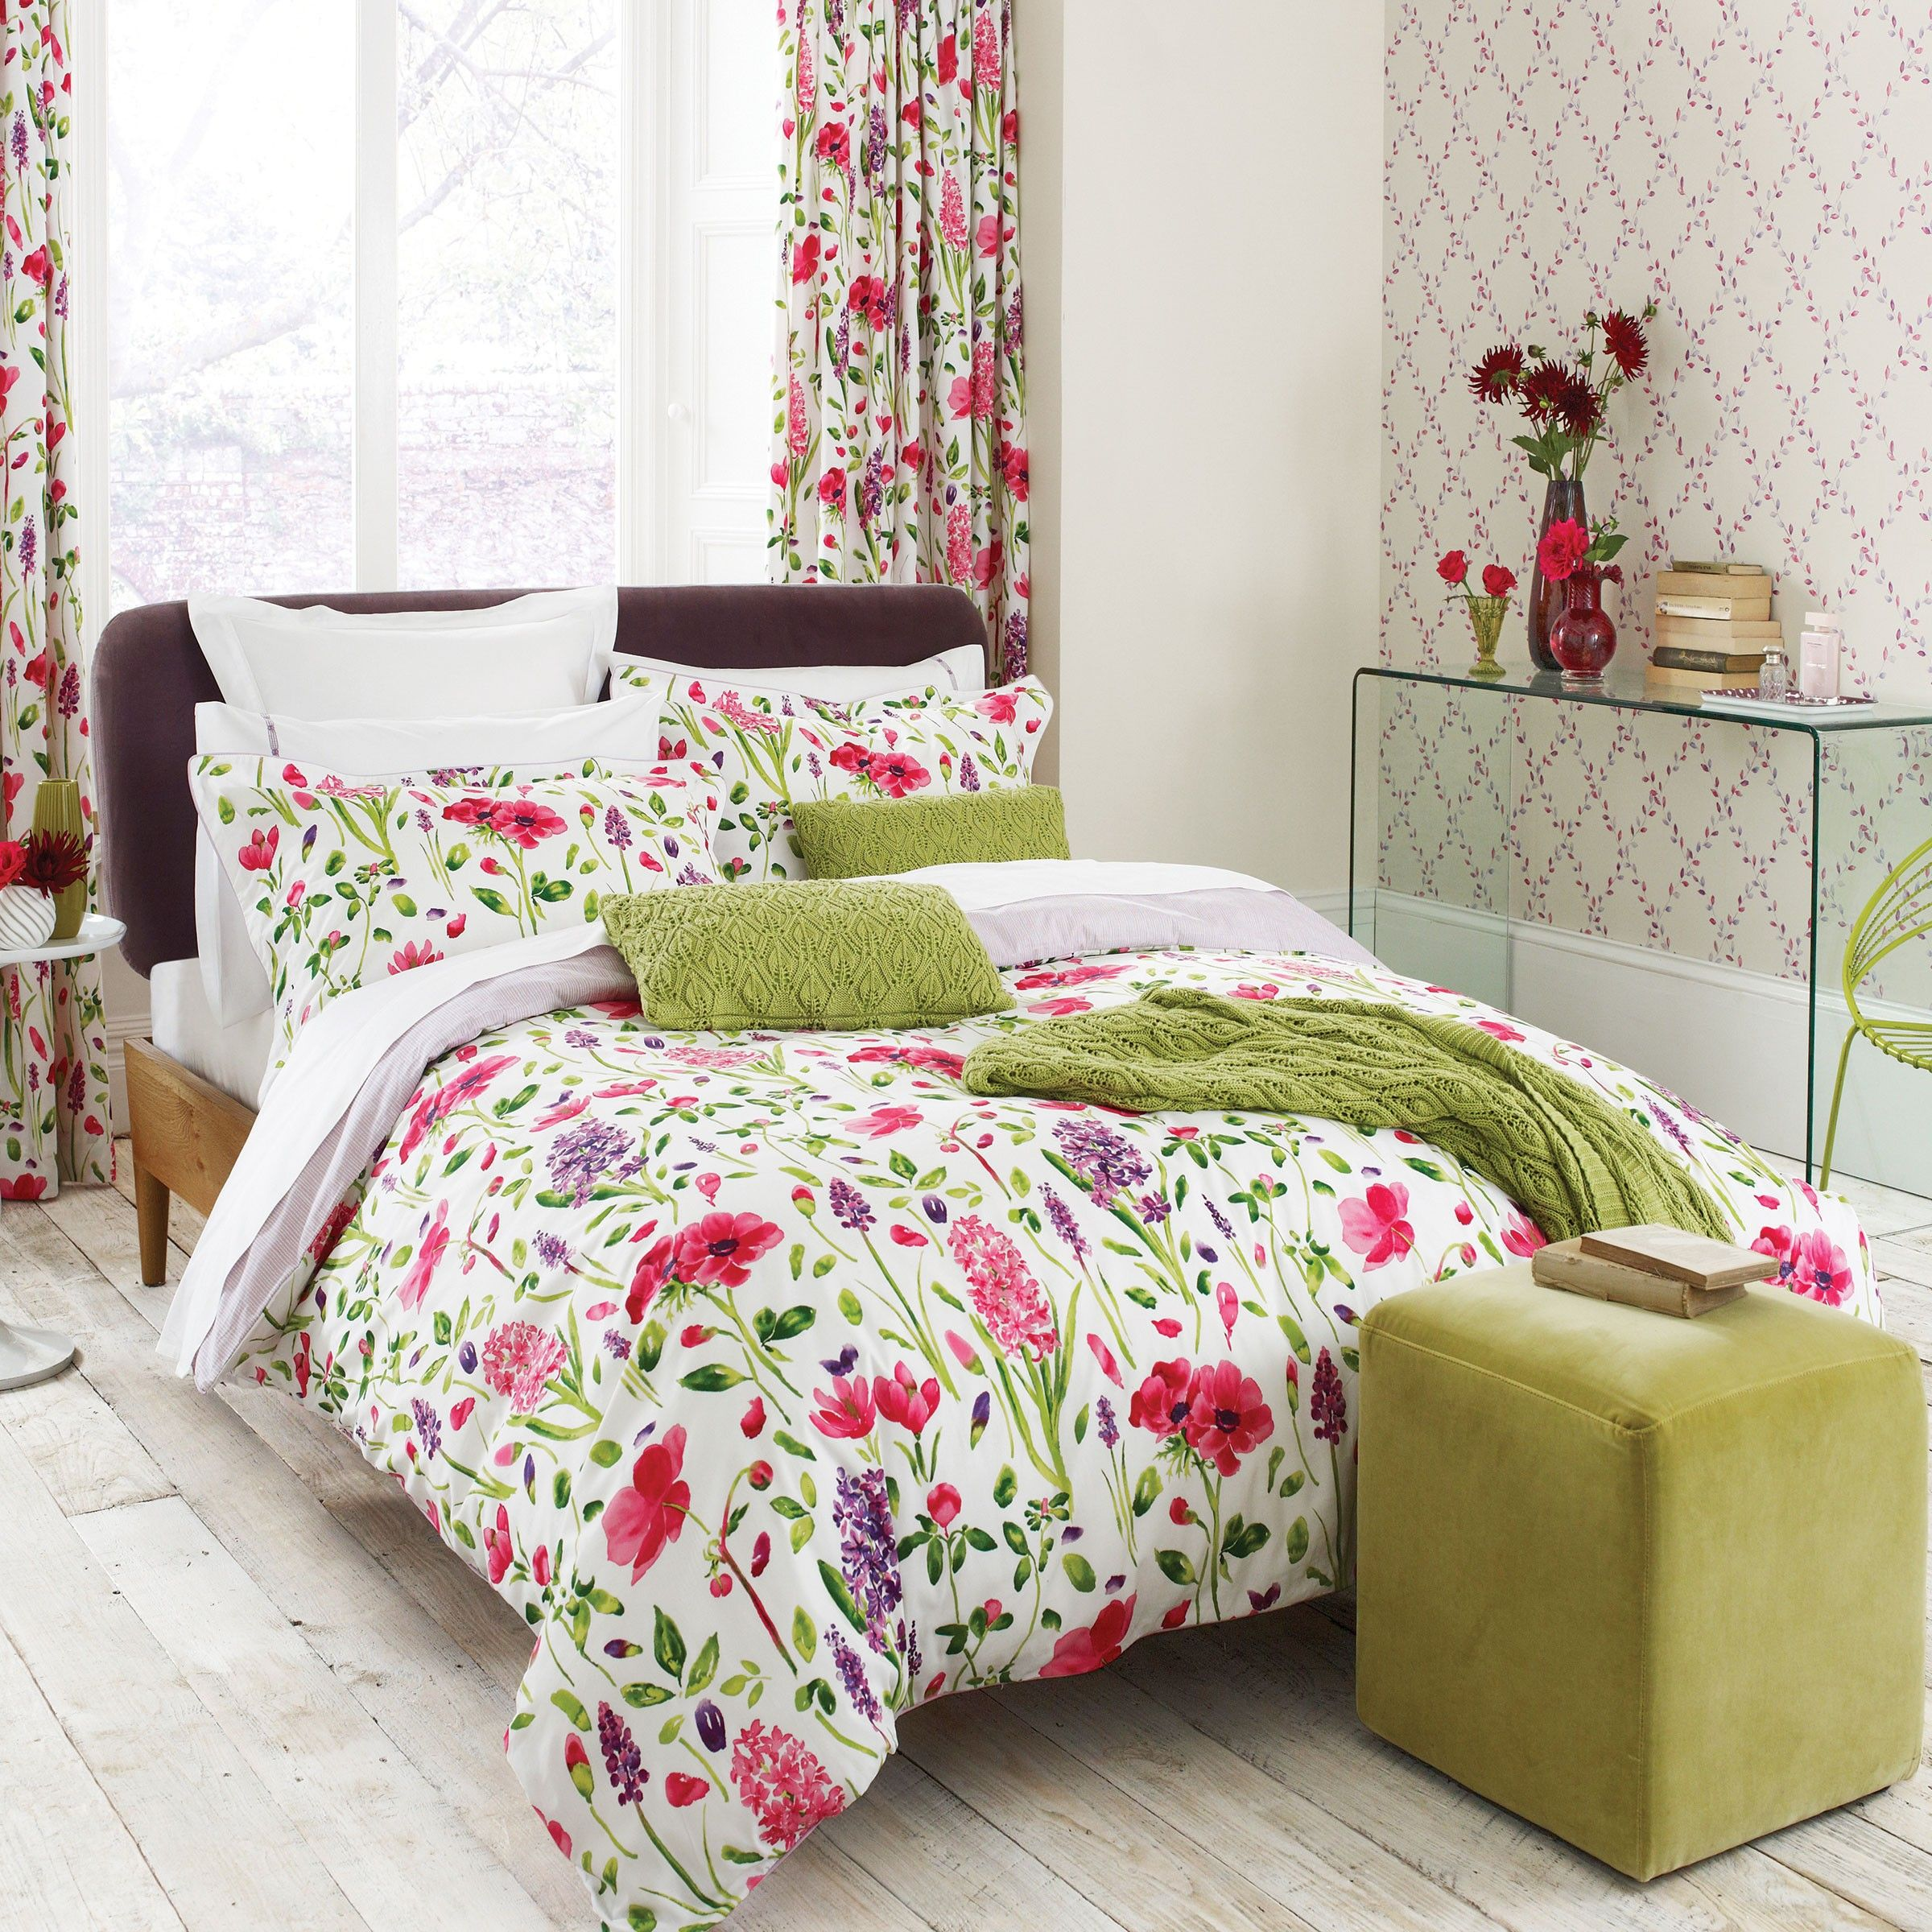 comforter zoom amethyst bedding guild designers category comforters in floral alexandria by